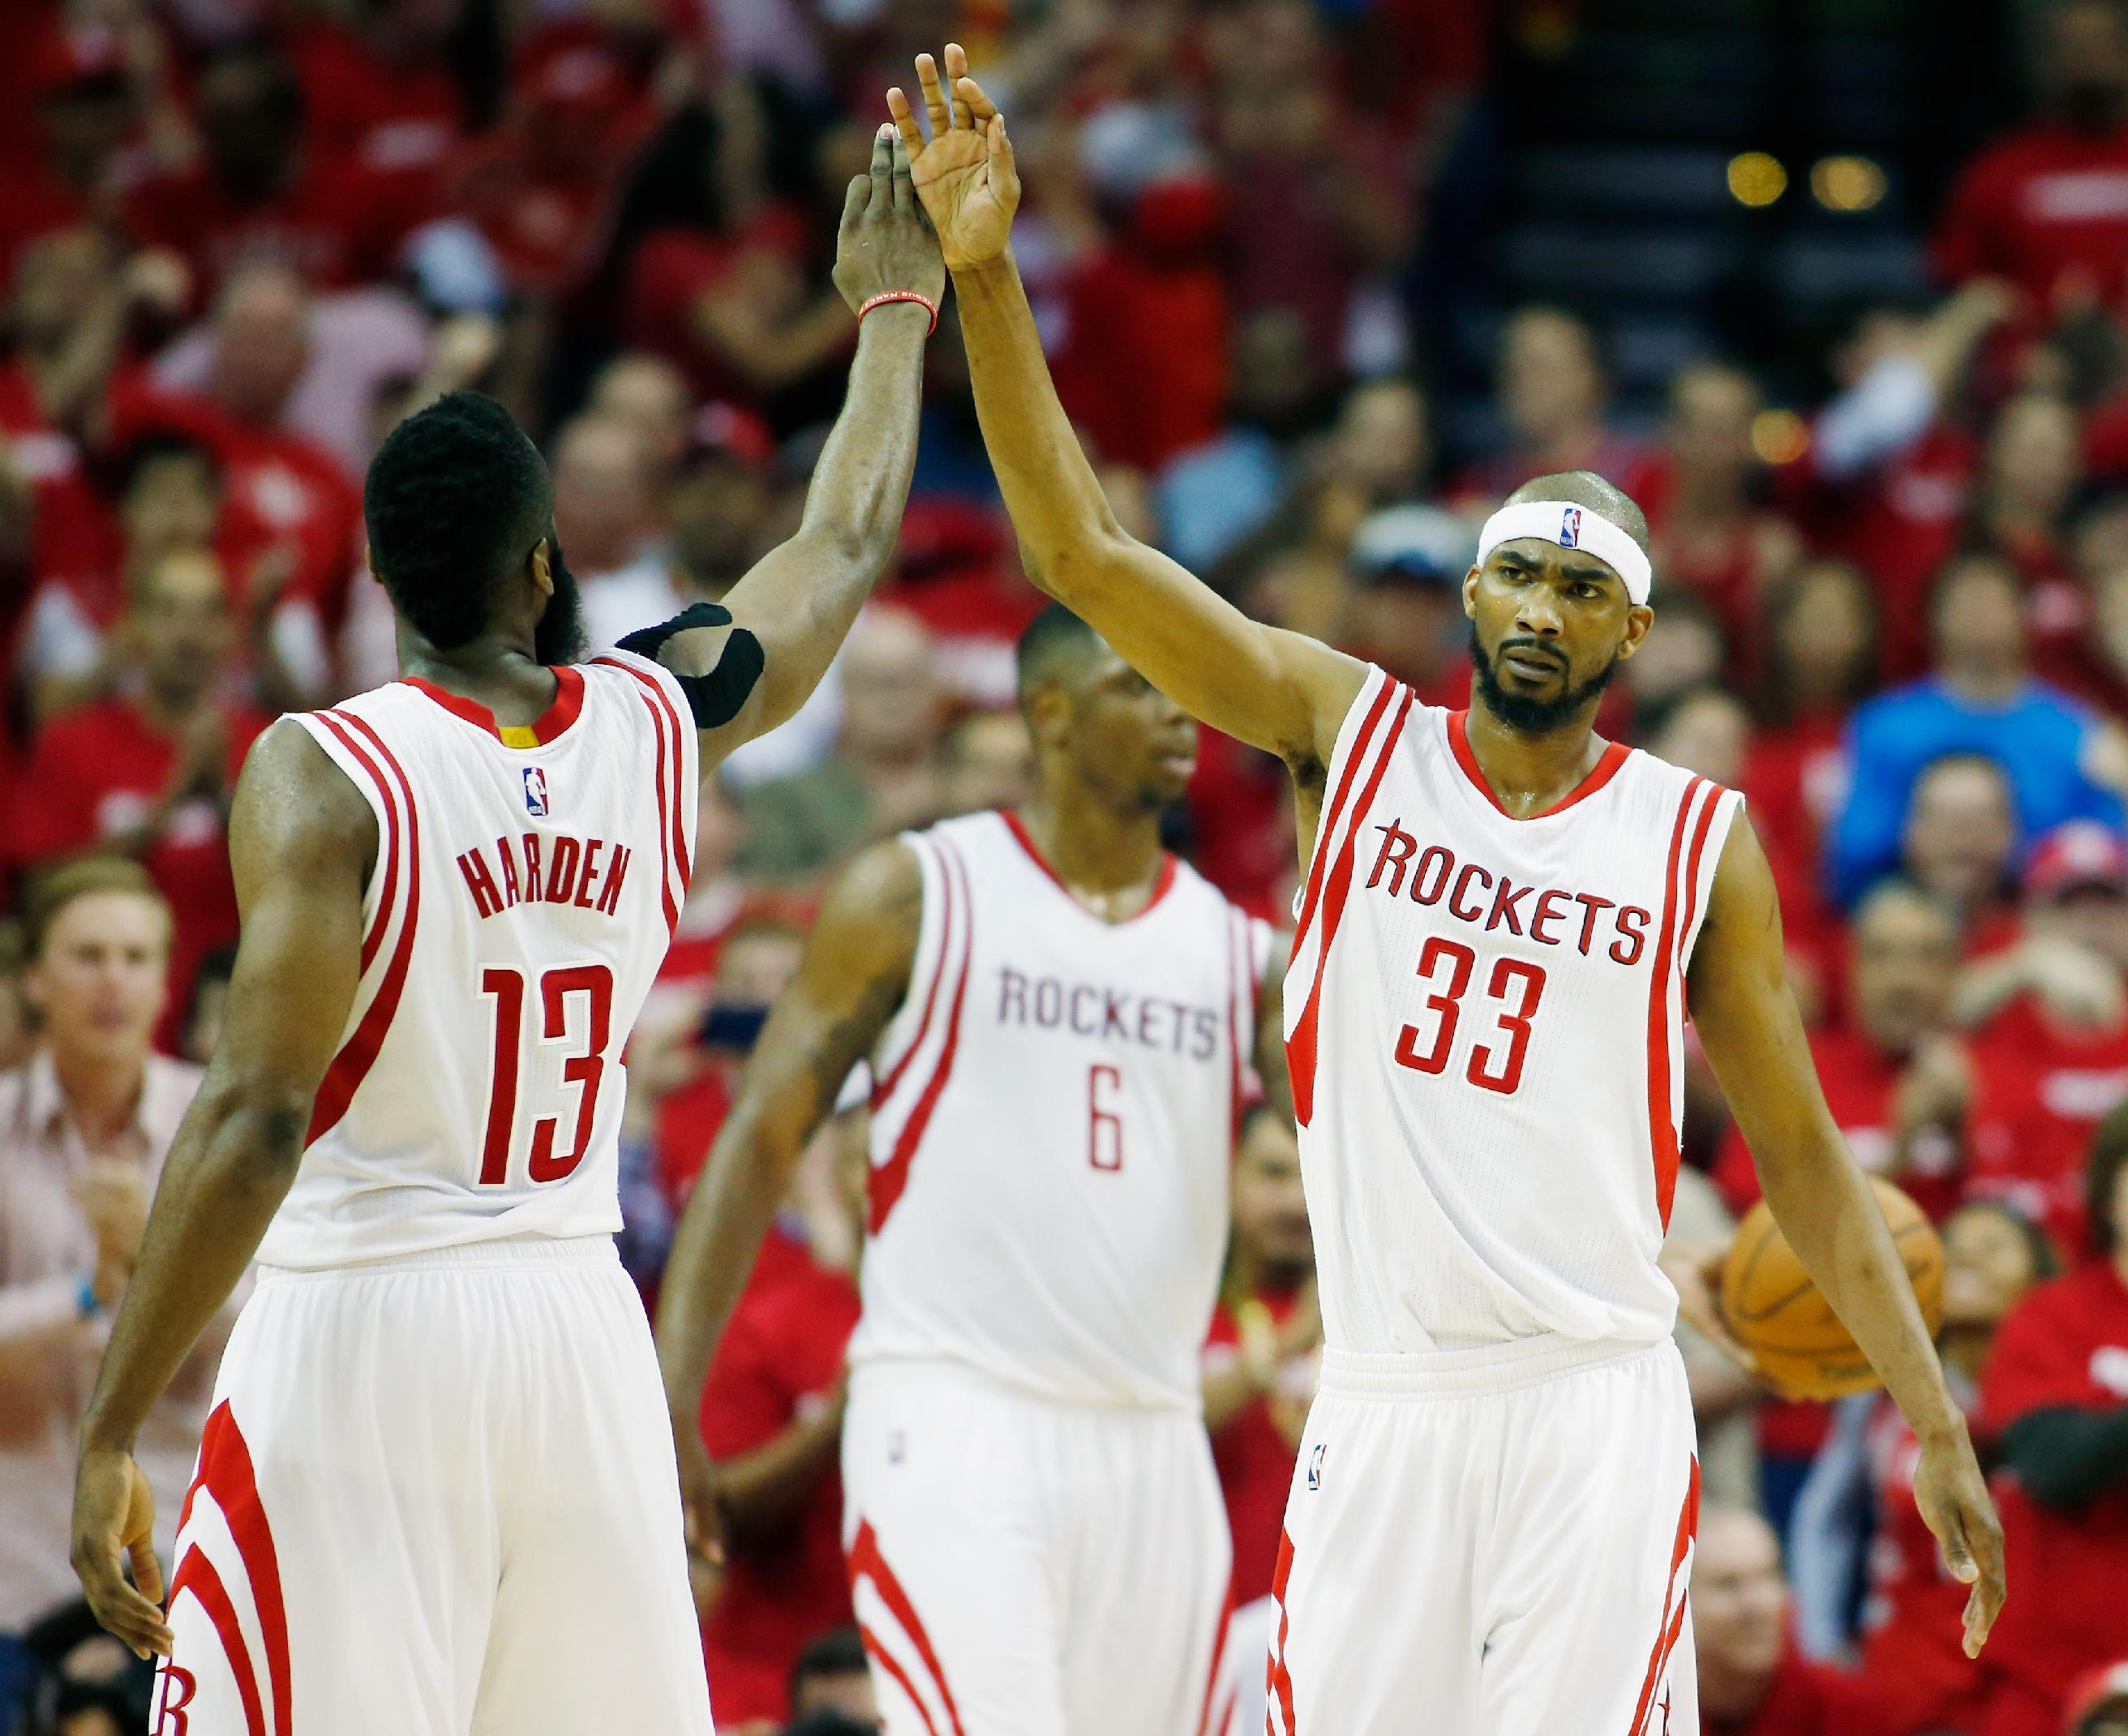 Harden has 24 points, Rockets beat Mavs 118-108 in Game 1